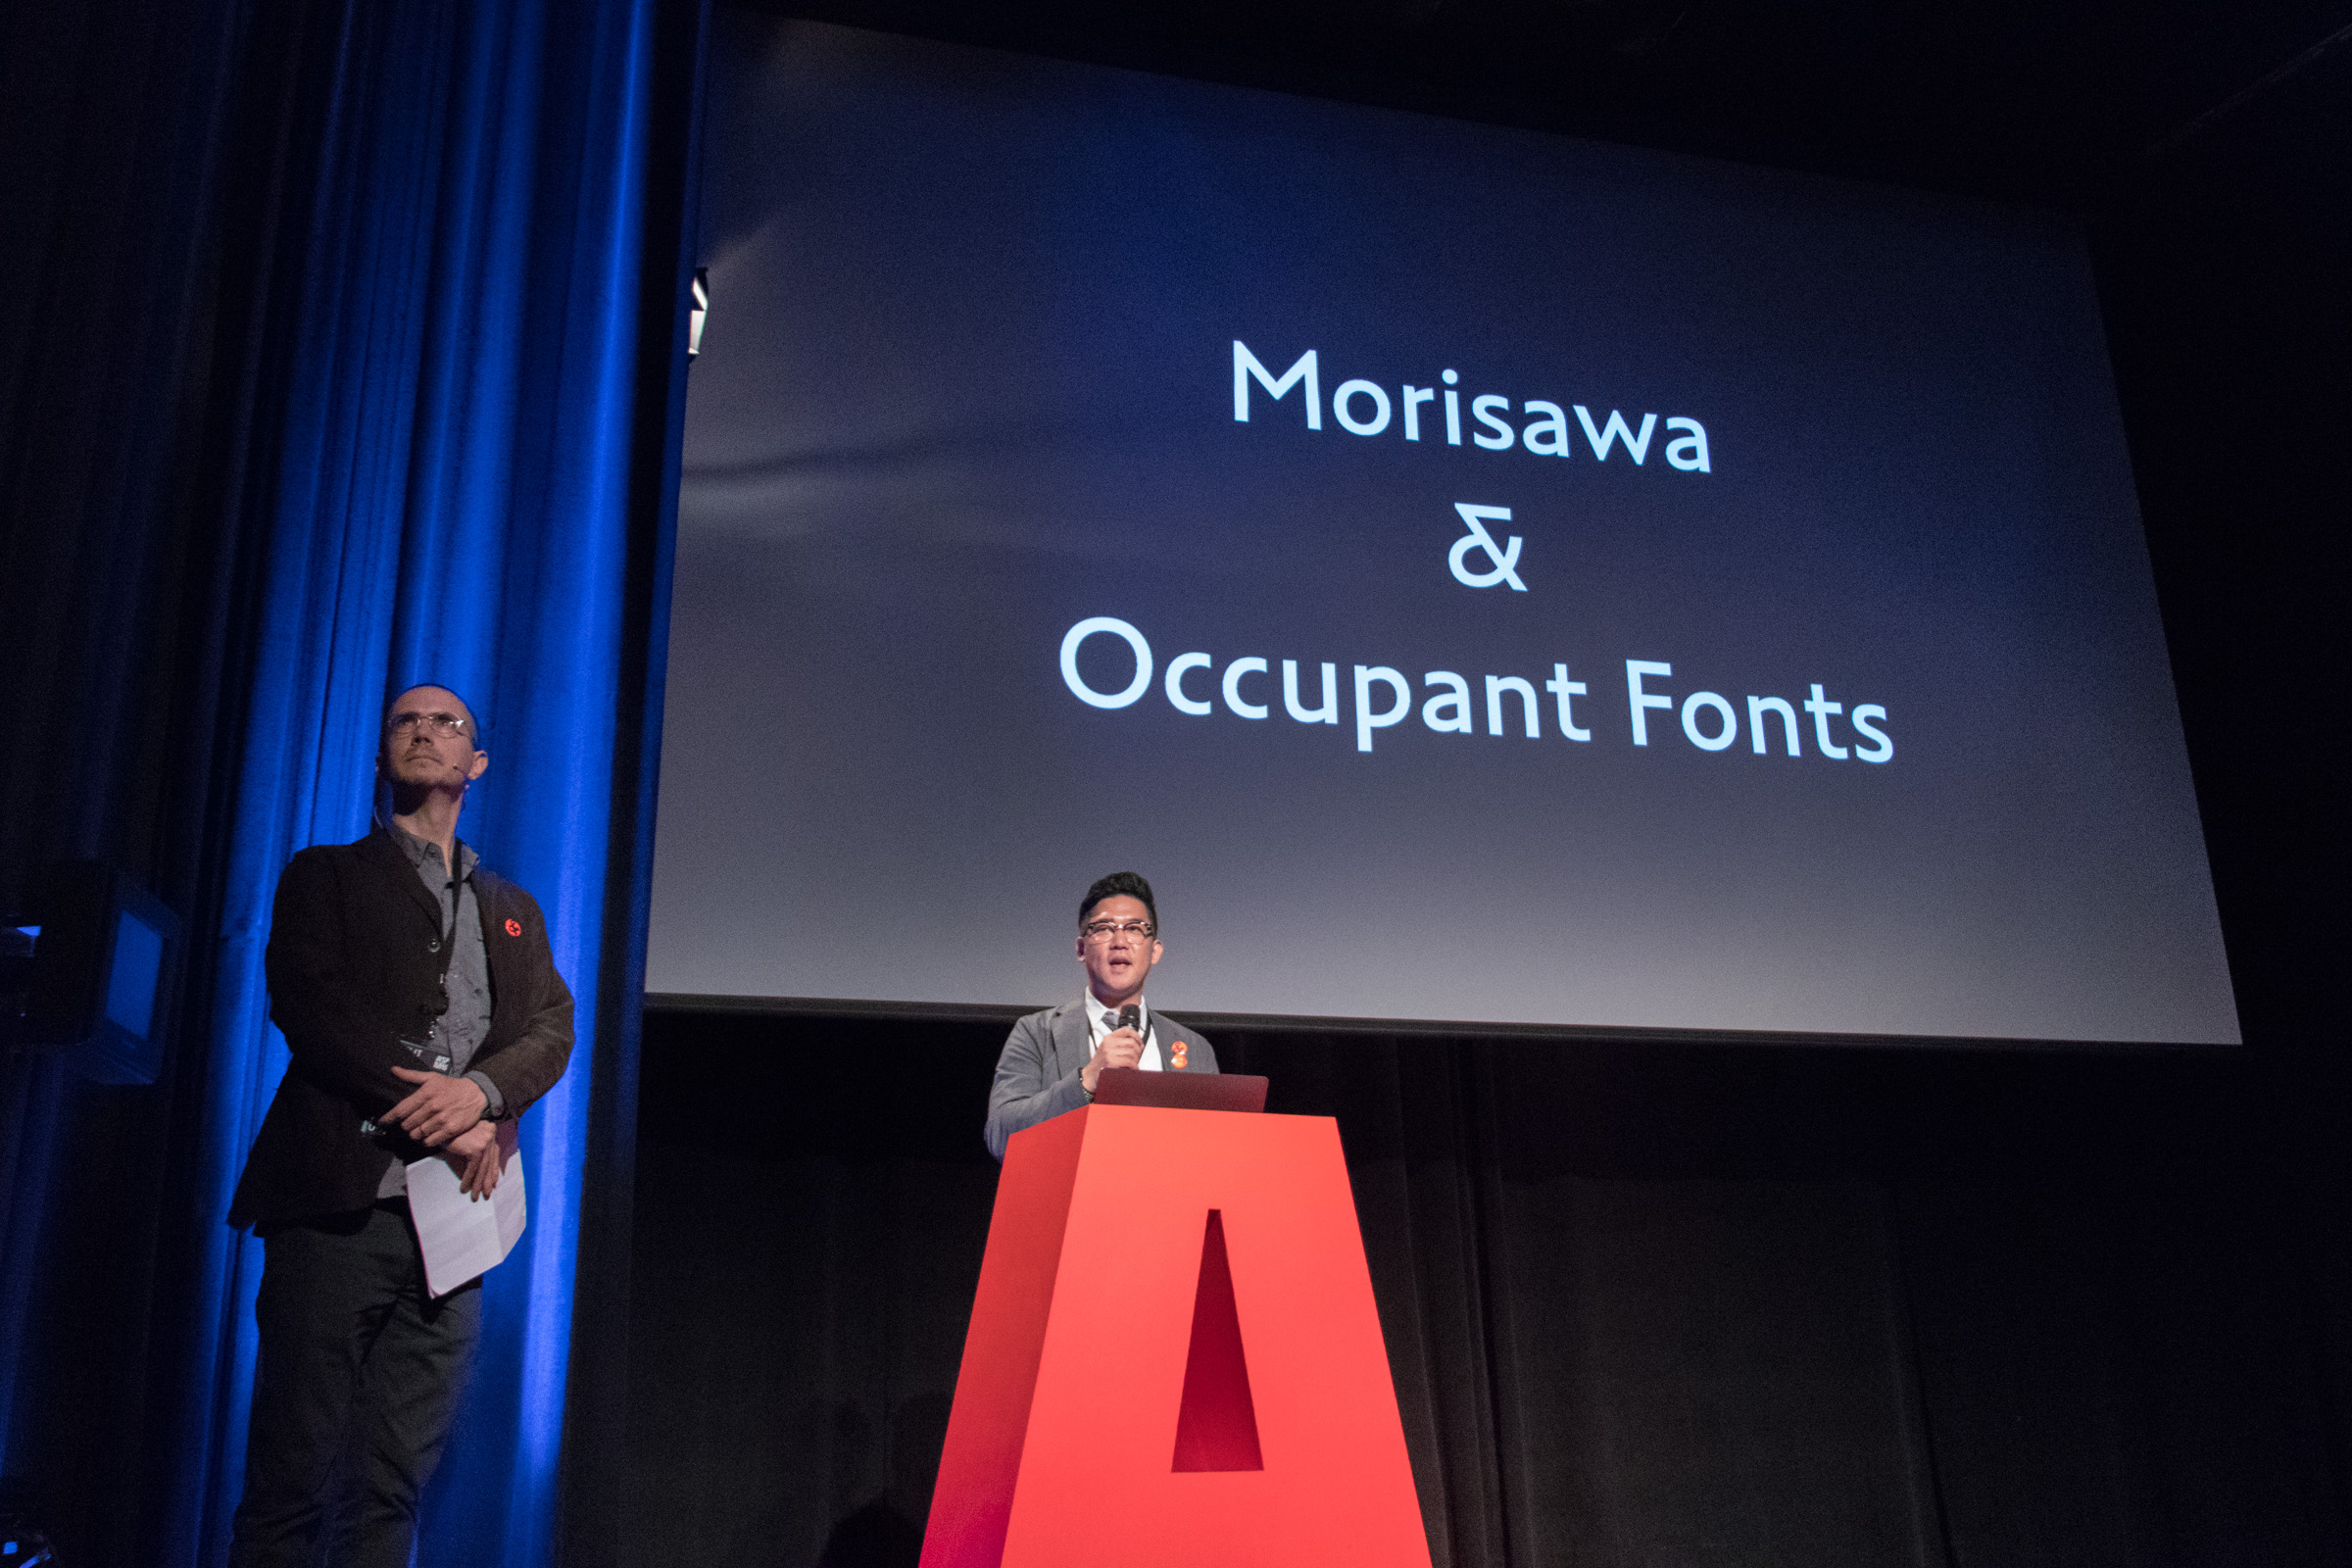 Tetsuo Sakomura takes the stage at ATypI 2017 Montreal, accompanied by Cyrus Highsmith